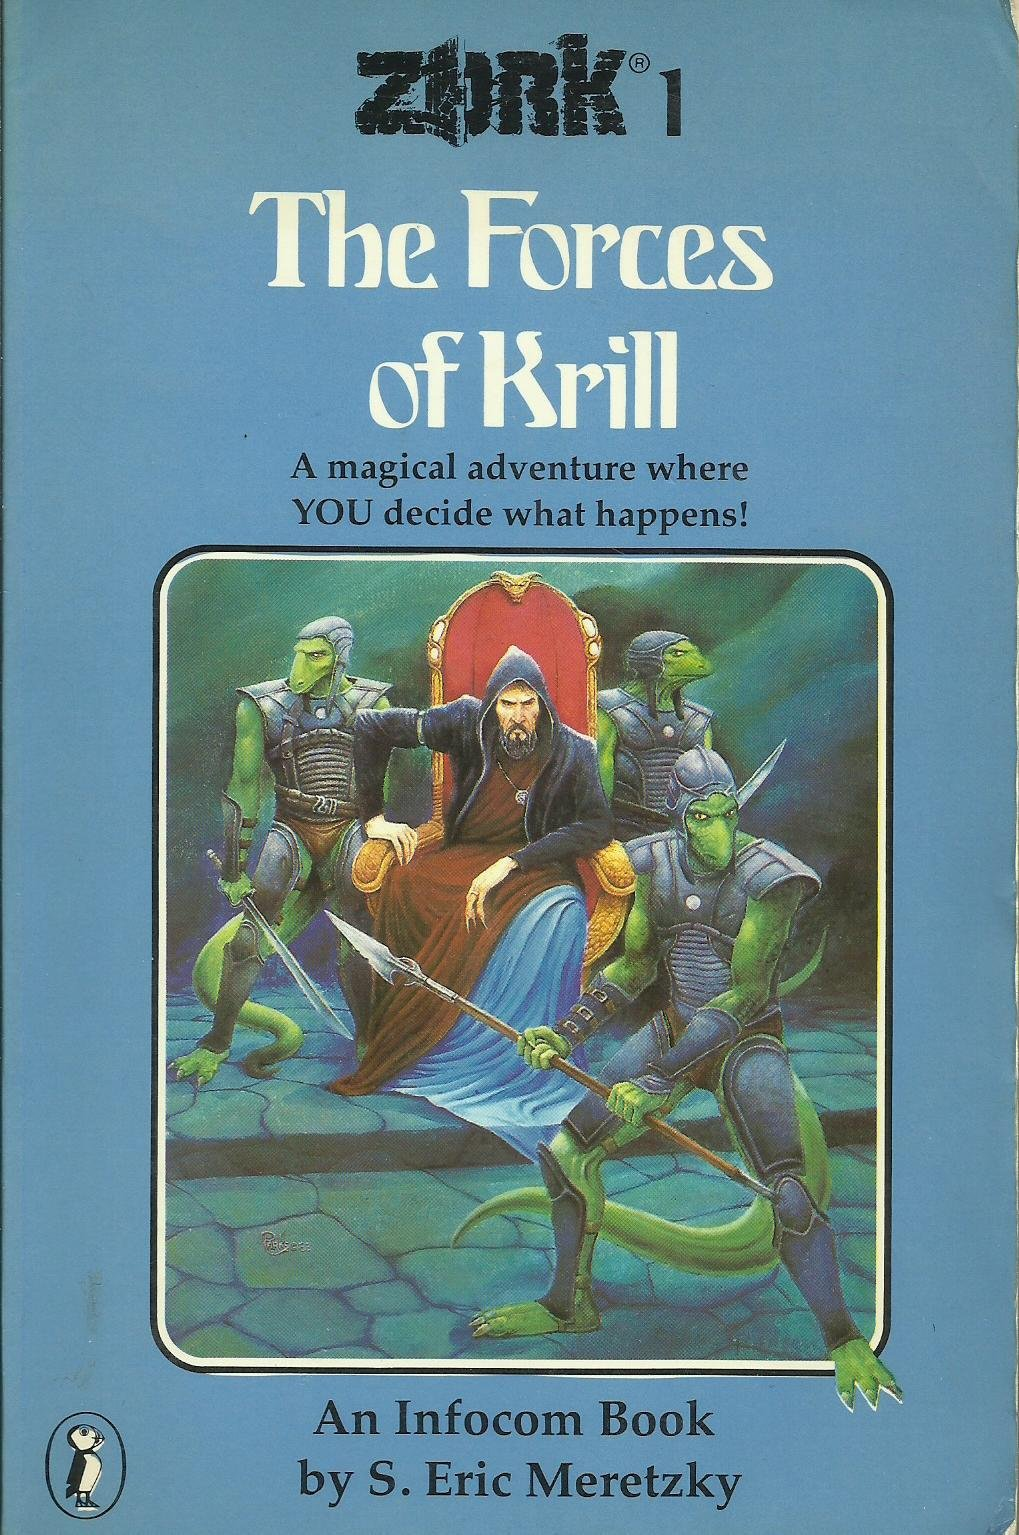 Forces Of Krill SEric Meretzky 9780140317558 Amazon Books